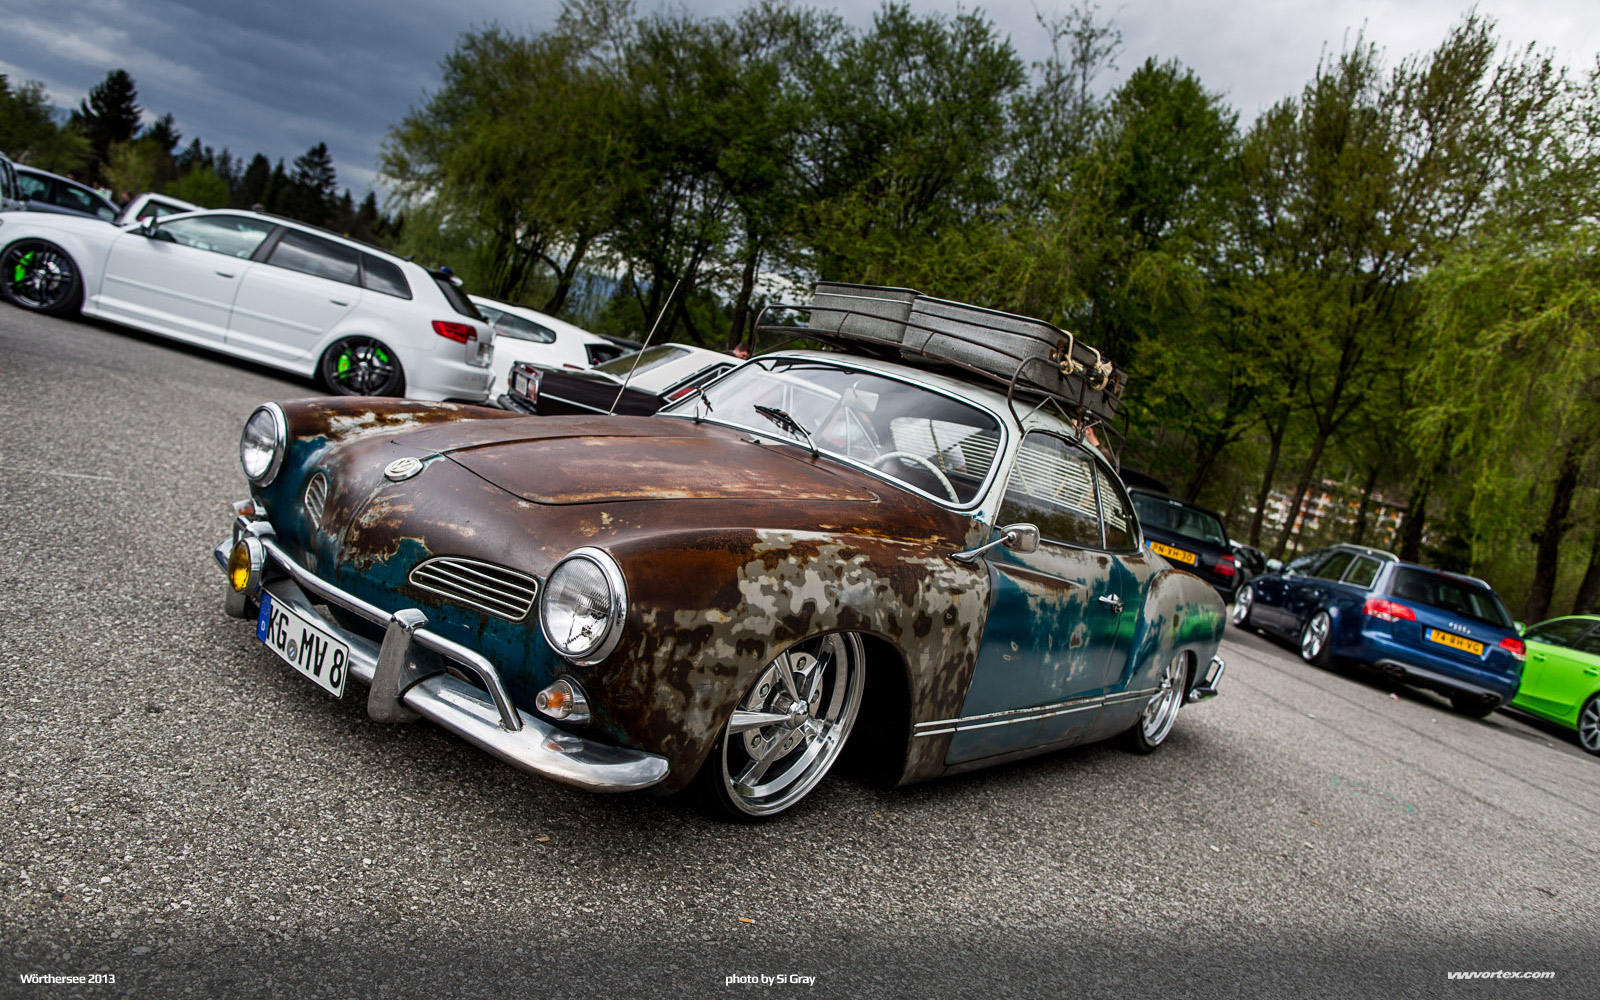 worthersee-2013-gallery-si-gray-081